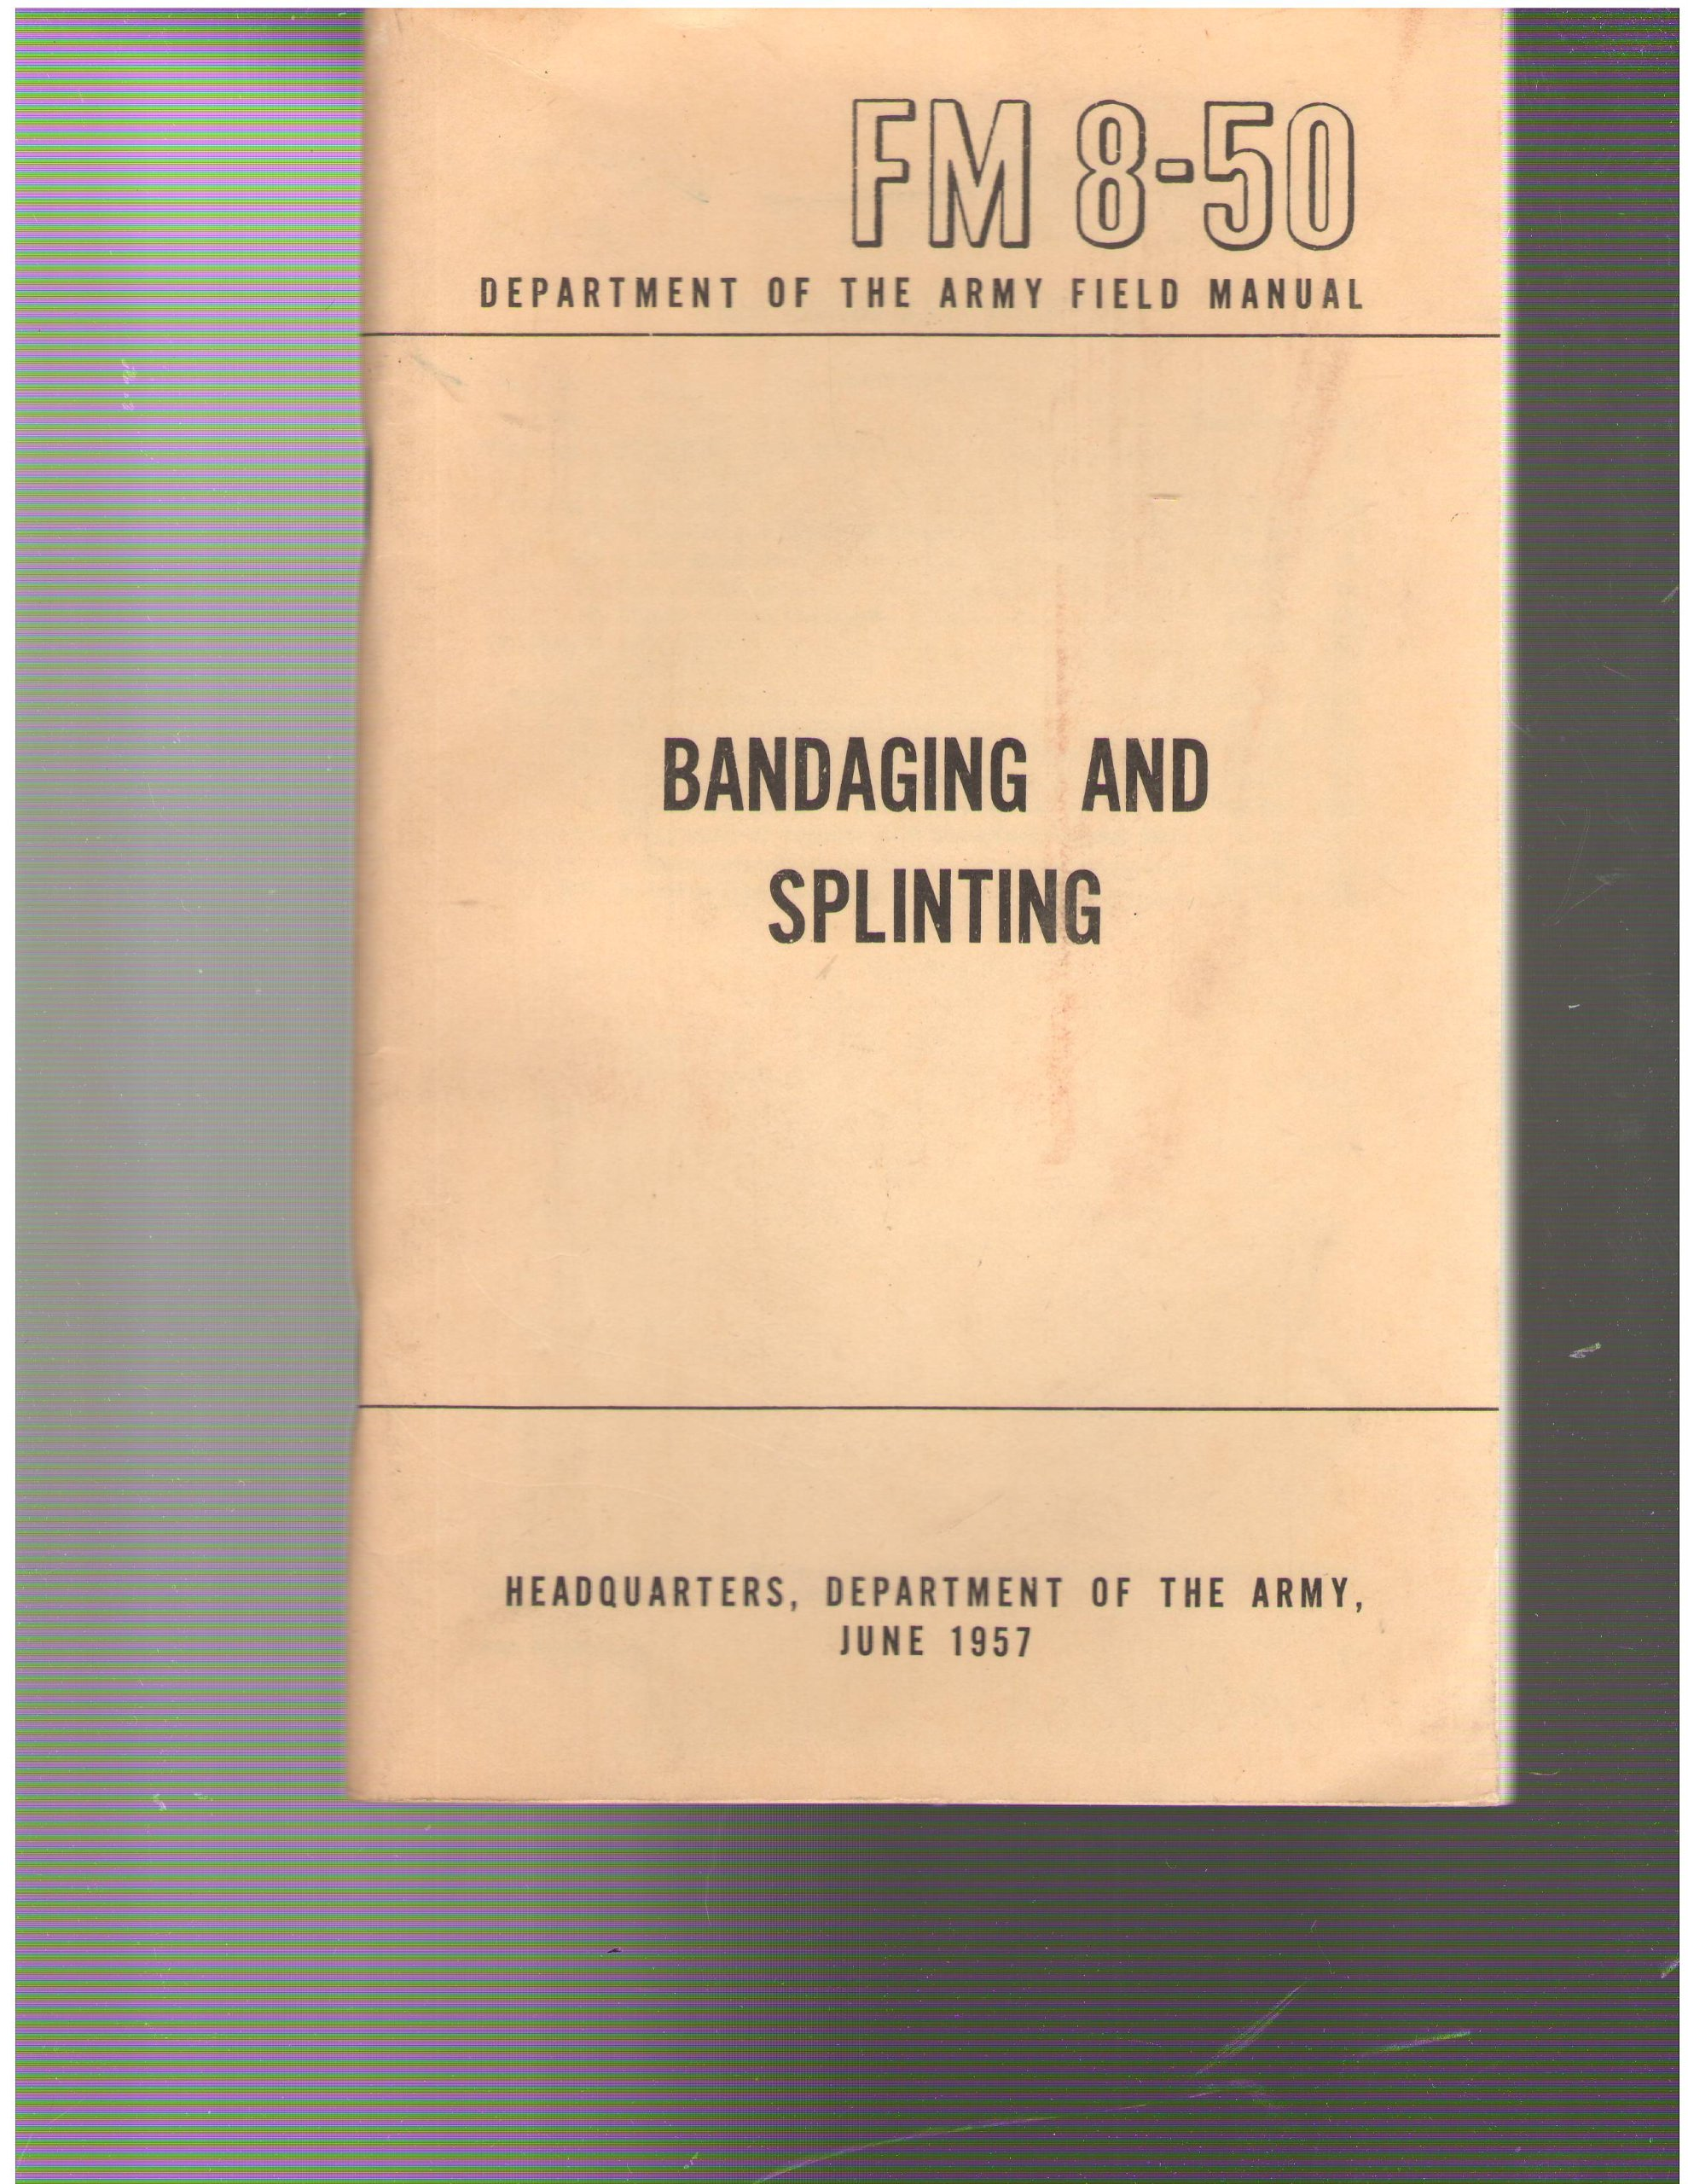 Department of the Army Field Manual FM 8-50: Bandaging and Splinting:  Amazon.com: Books